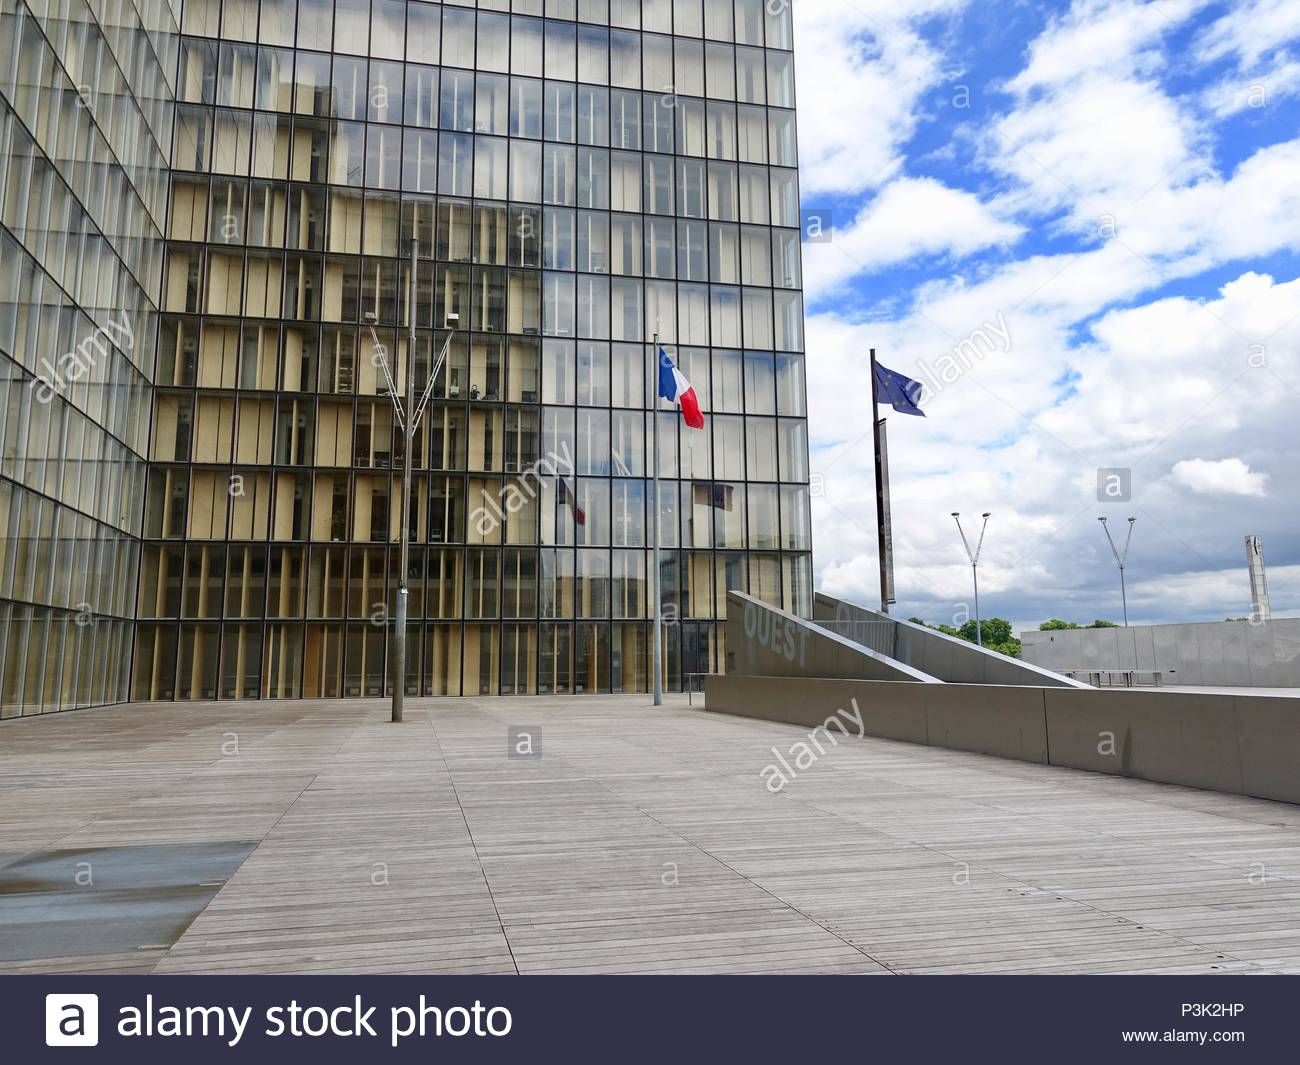 Closeup view of a section of the National Library of France, Bibliotèque National de France, with French and European Union flags, Paris, France - Stock Image